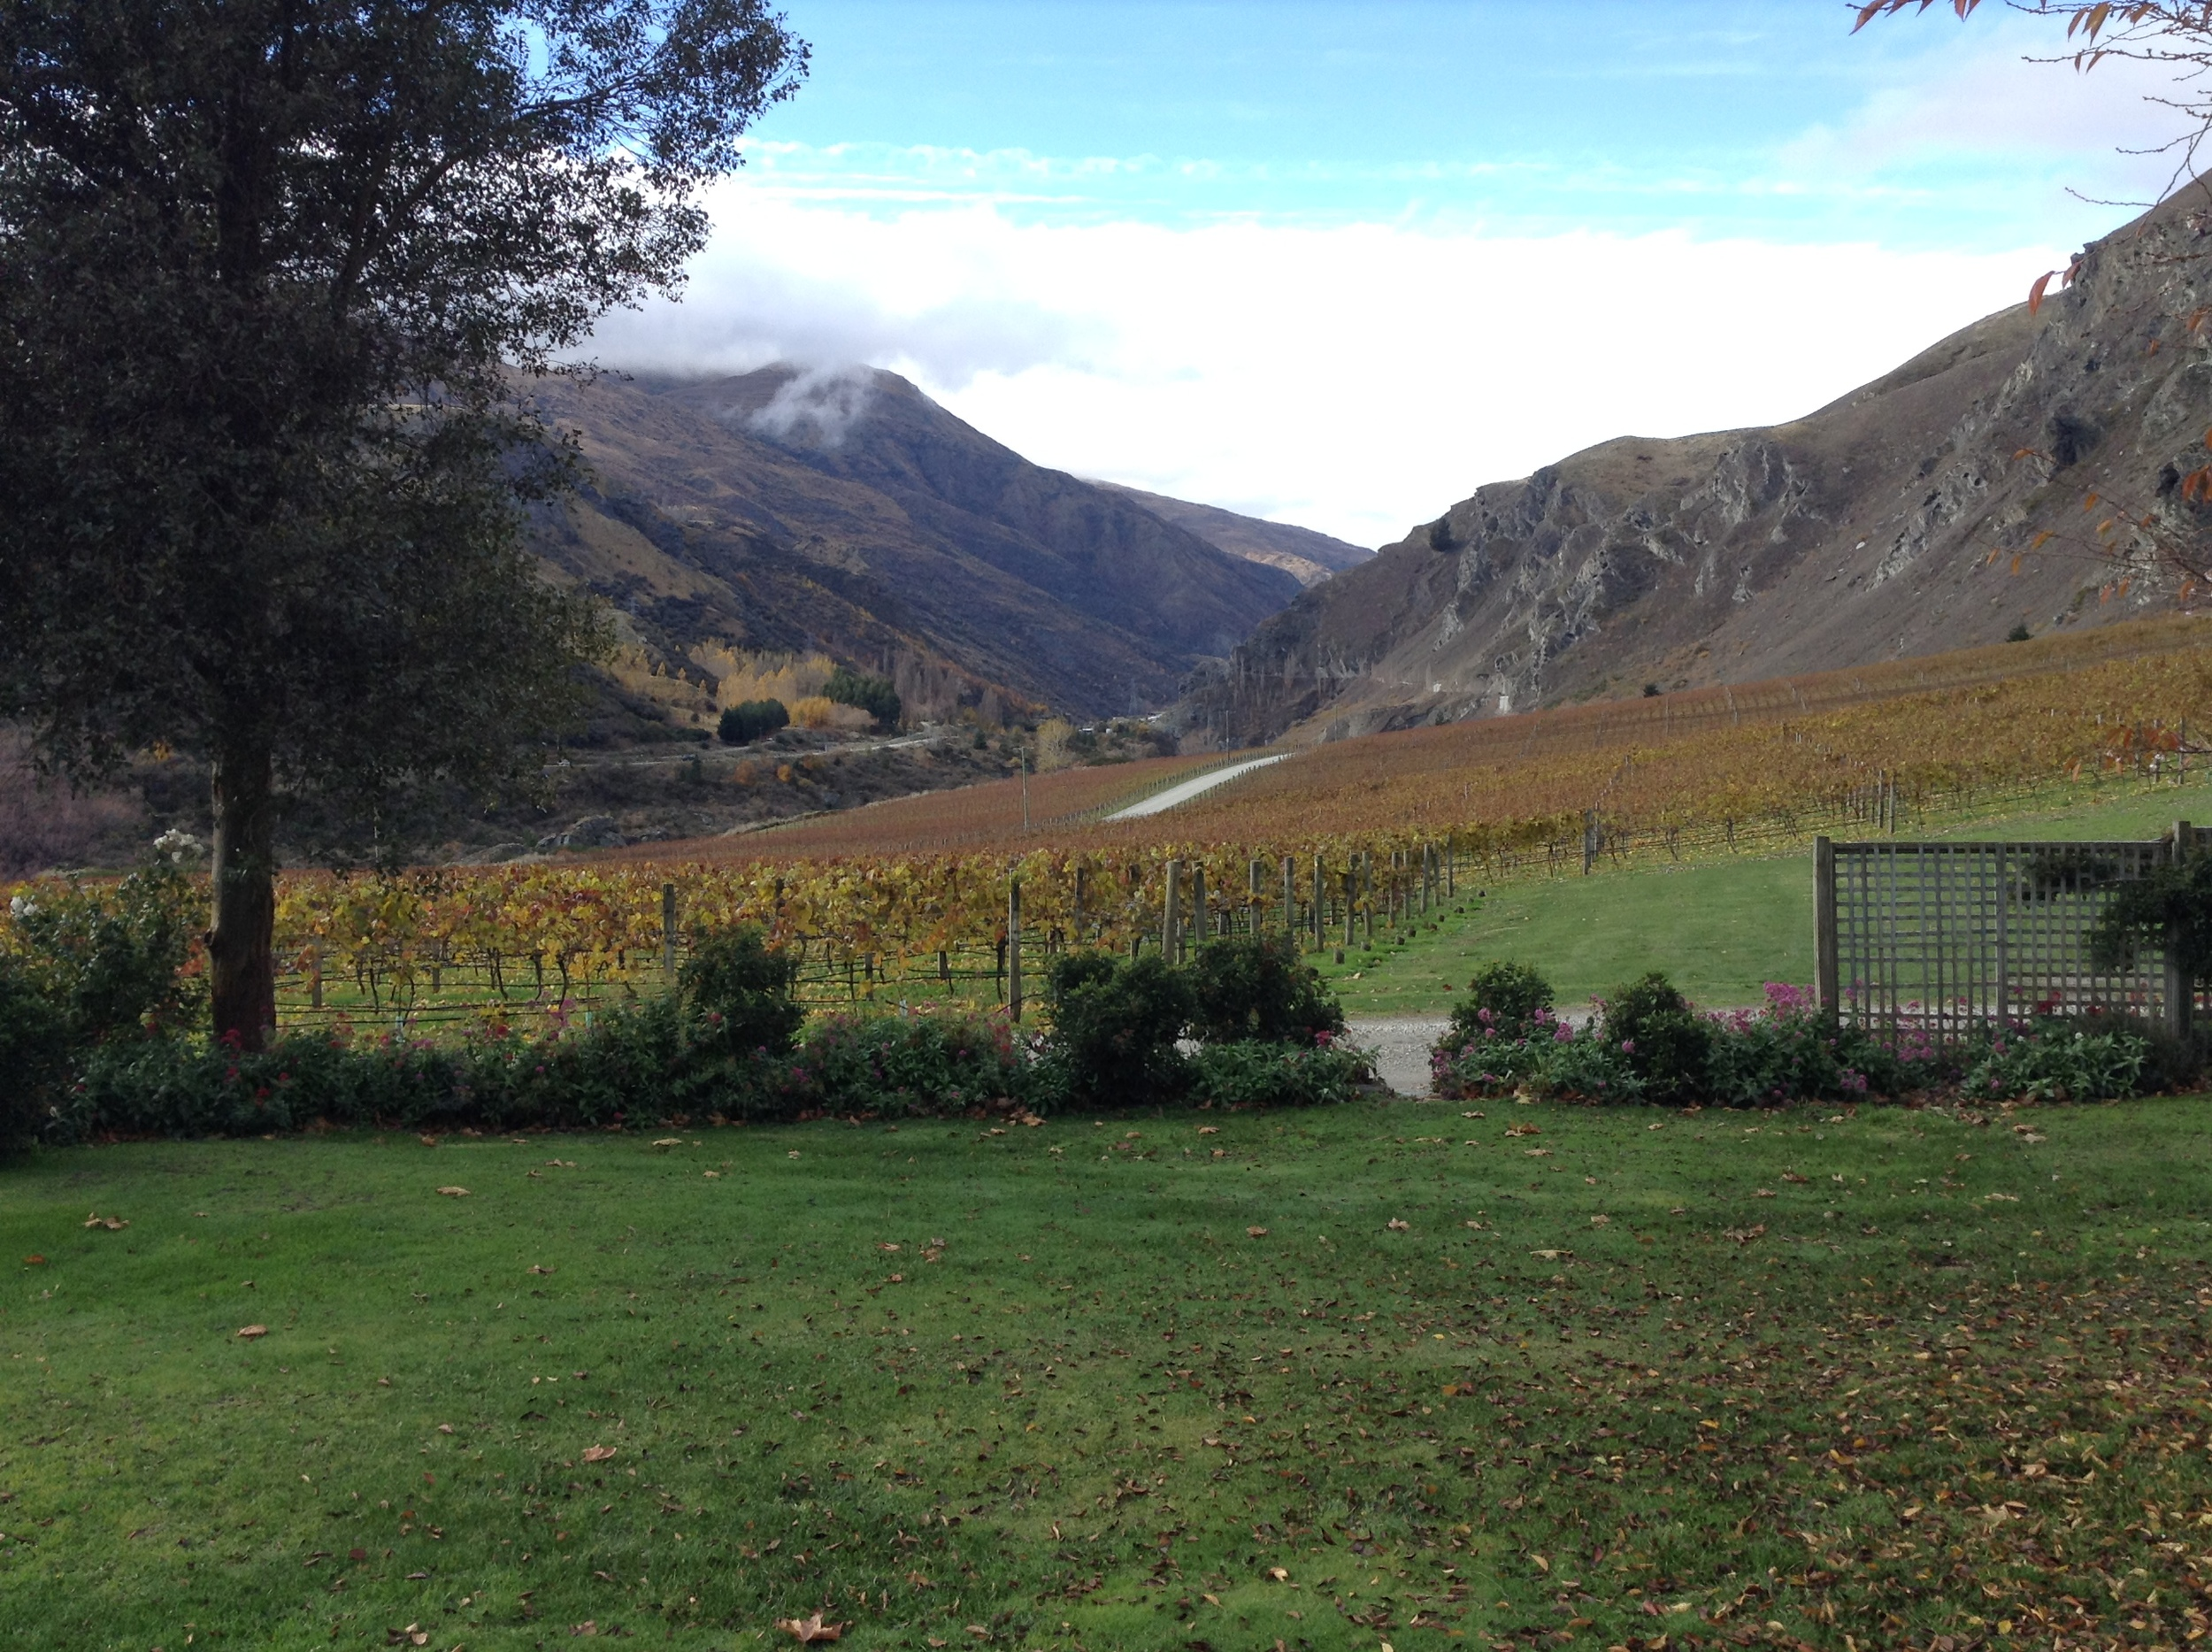 Looking back at the vineyard and the entrance to the 'Valley of Vines'